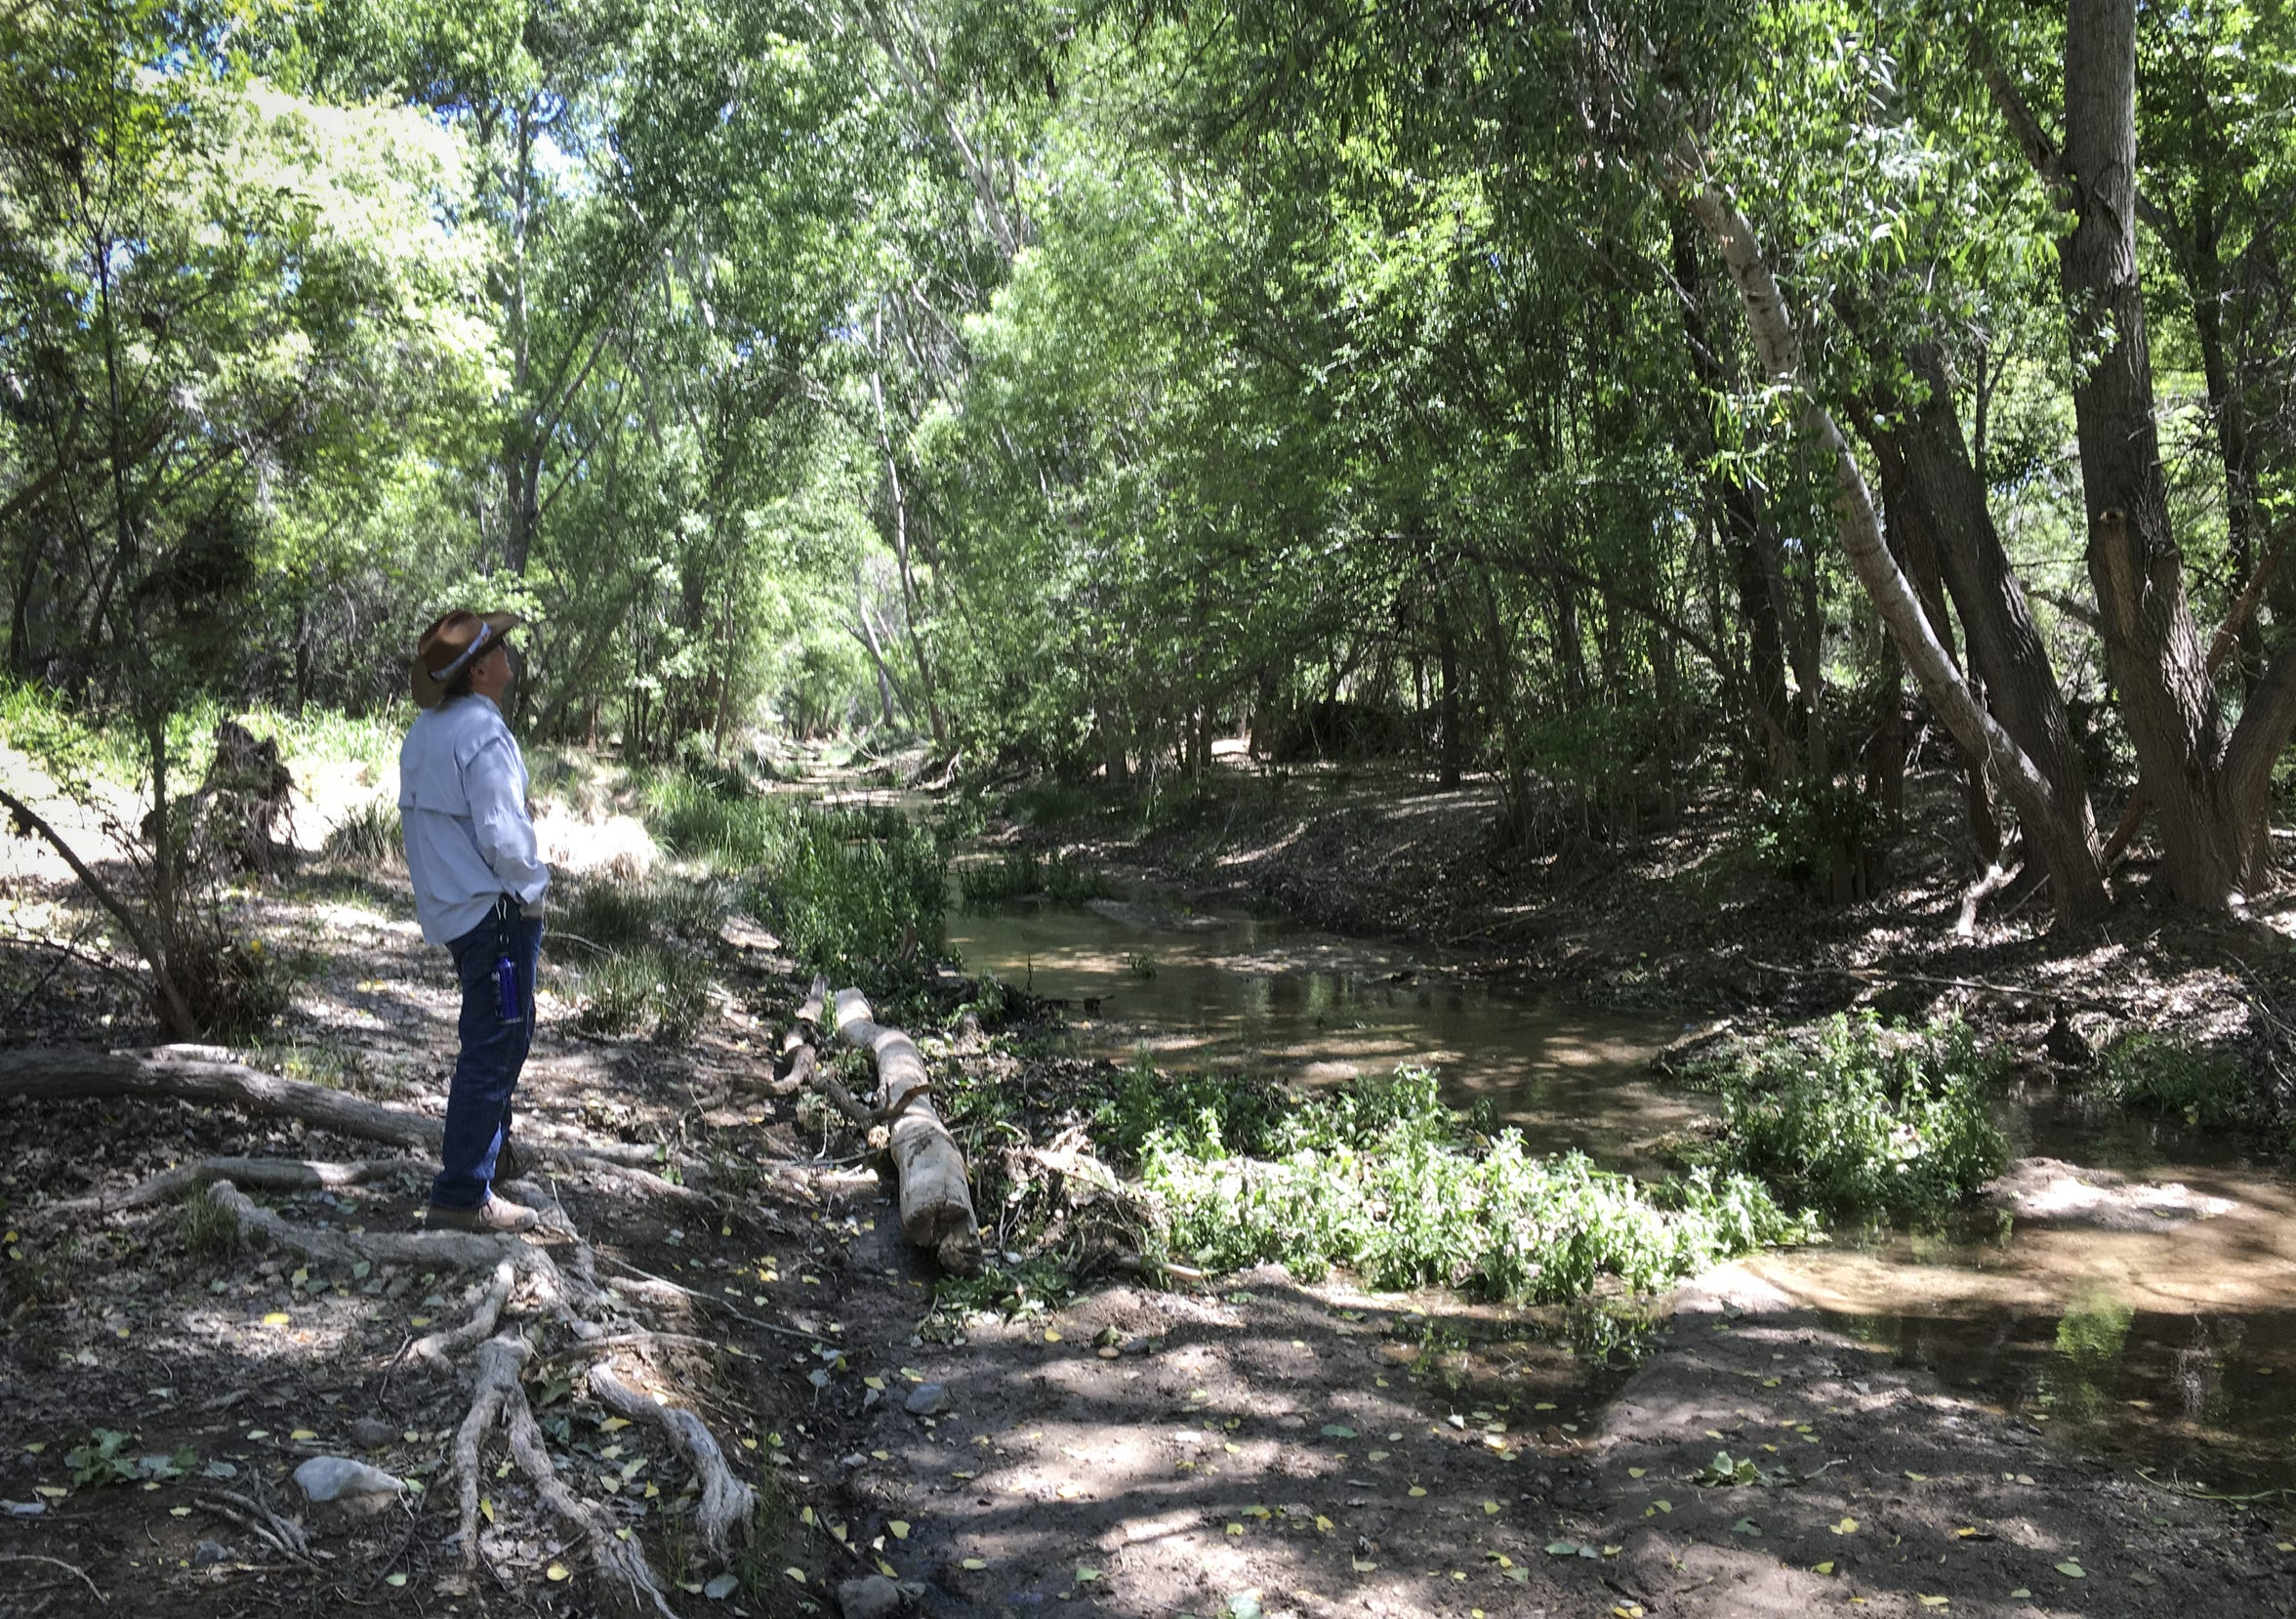 Steve Brown, board member of Save the Scenic Santa Ritas, walks along Cienega Creek on April 24, 2019.